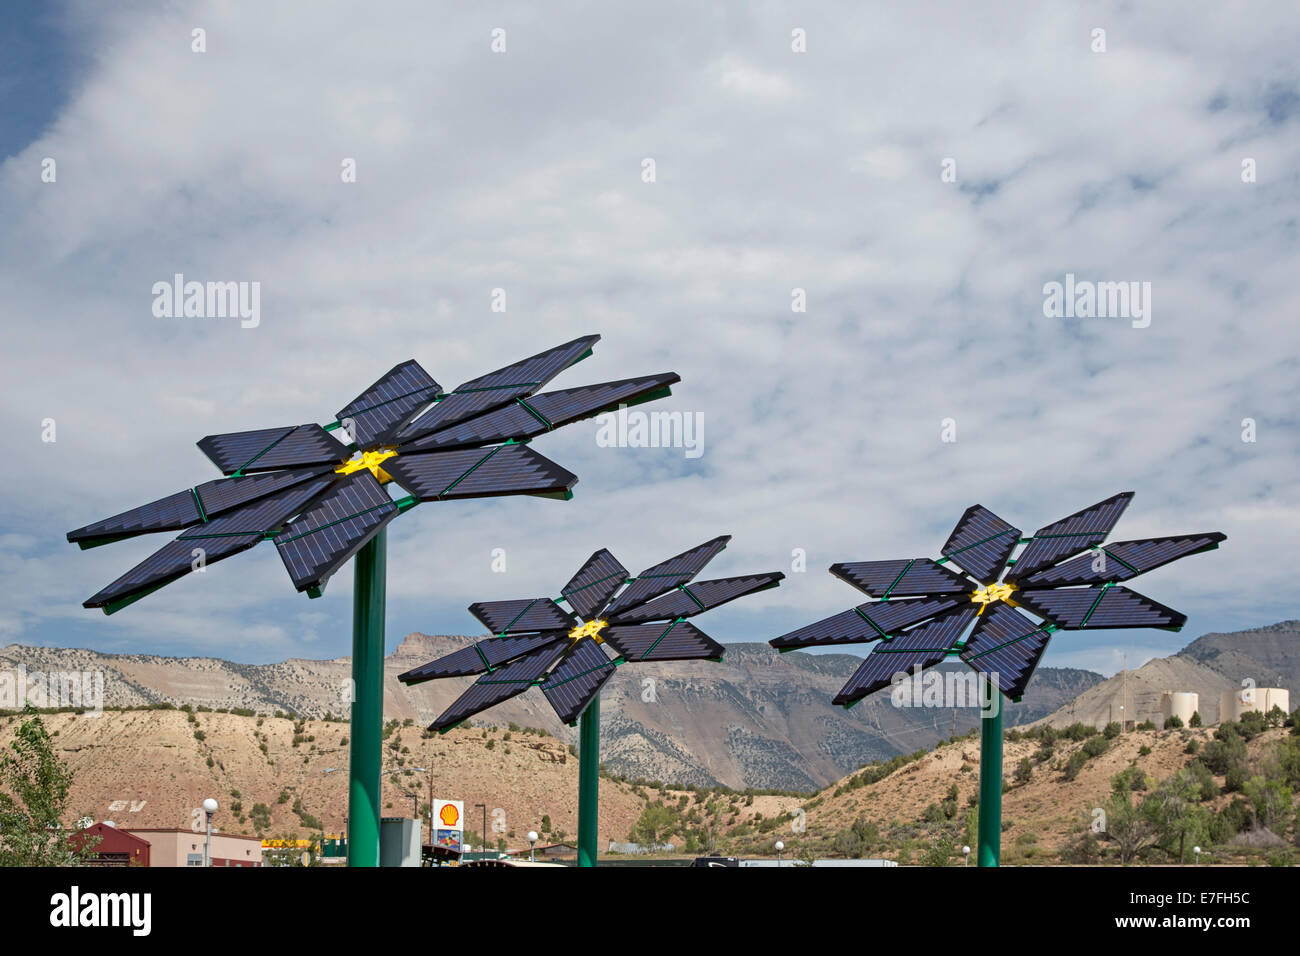 Parachute, Colorado - Solar panels made to resemble flowers provide electricity for a rest stop on Interstate 70. - Stock Image